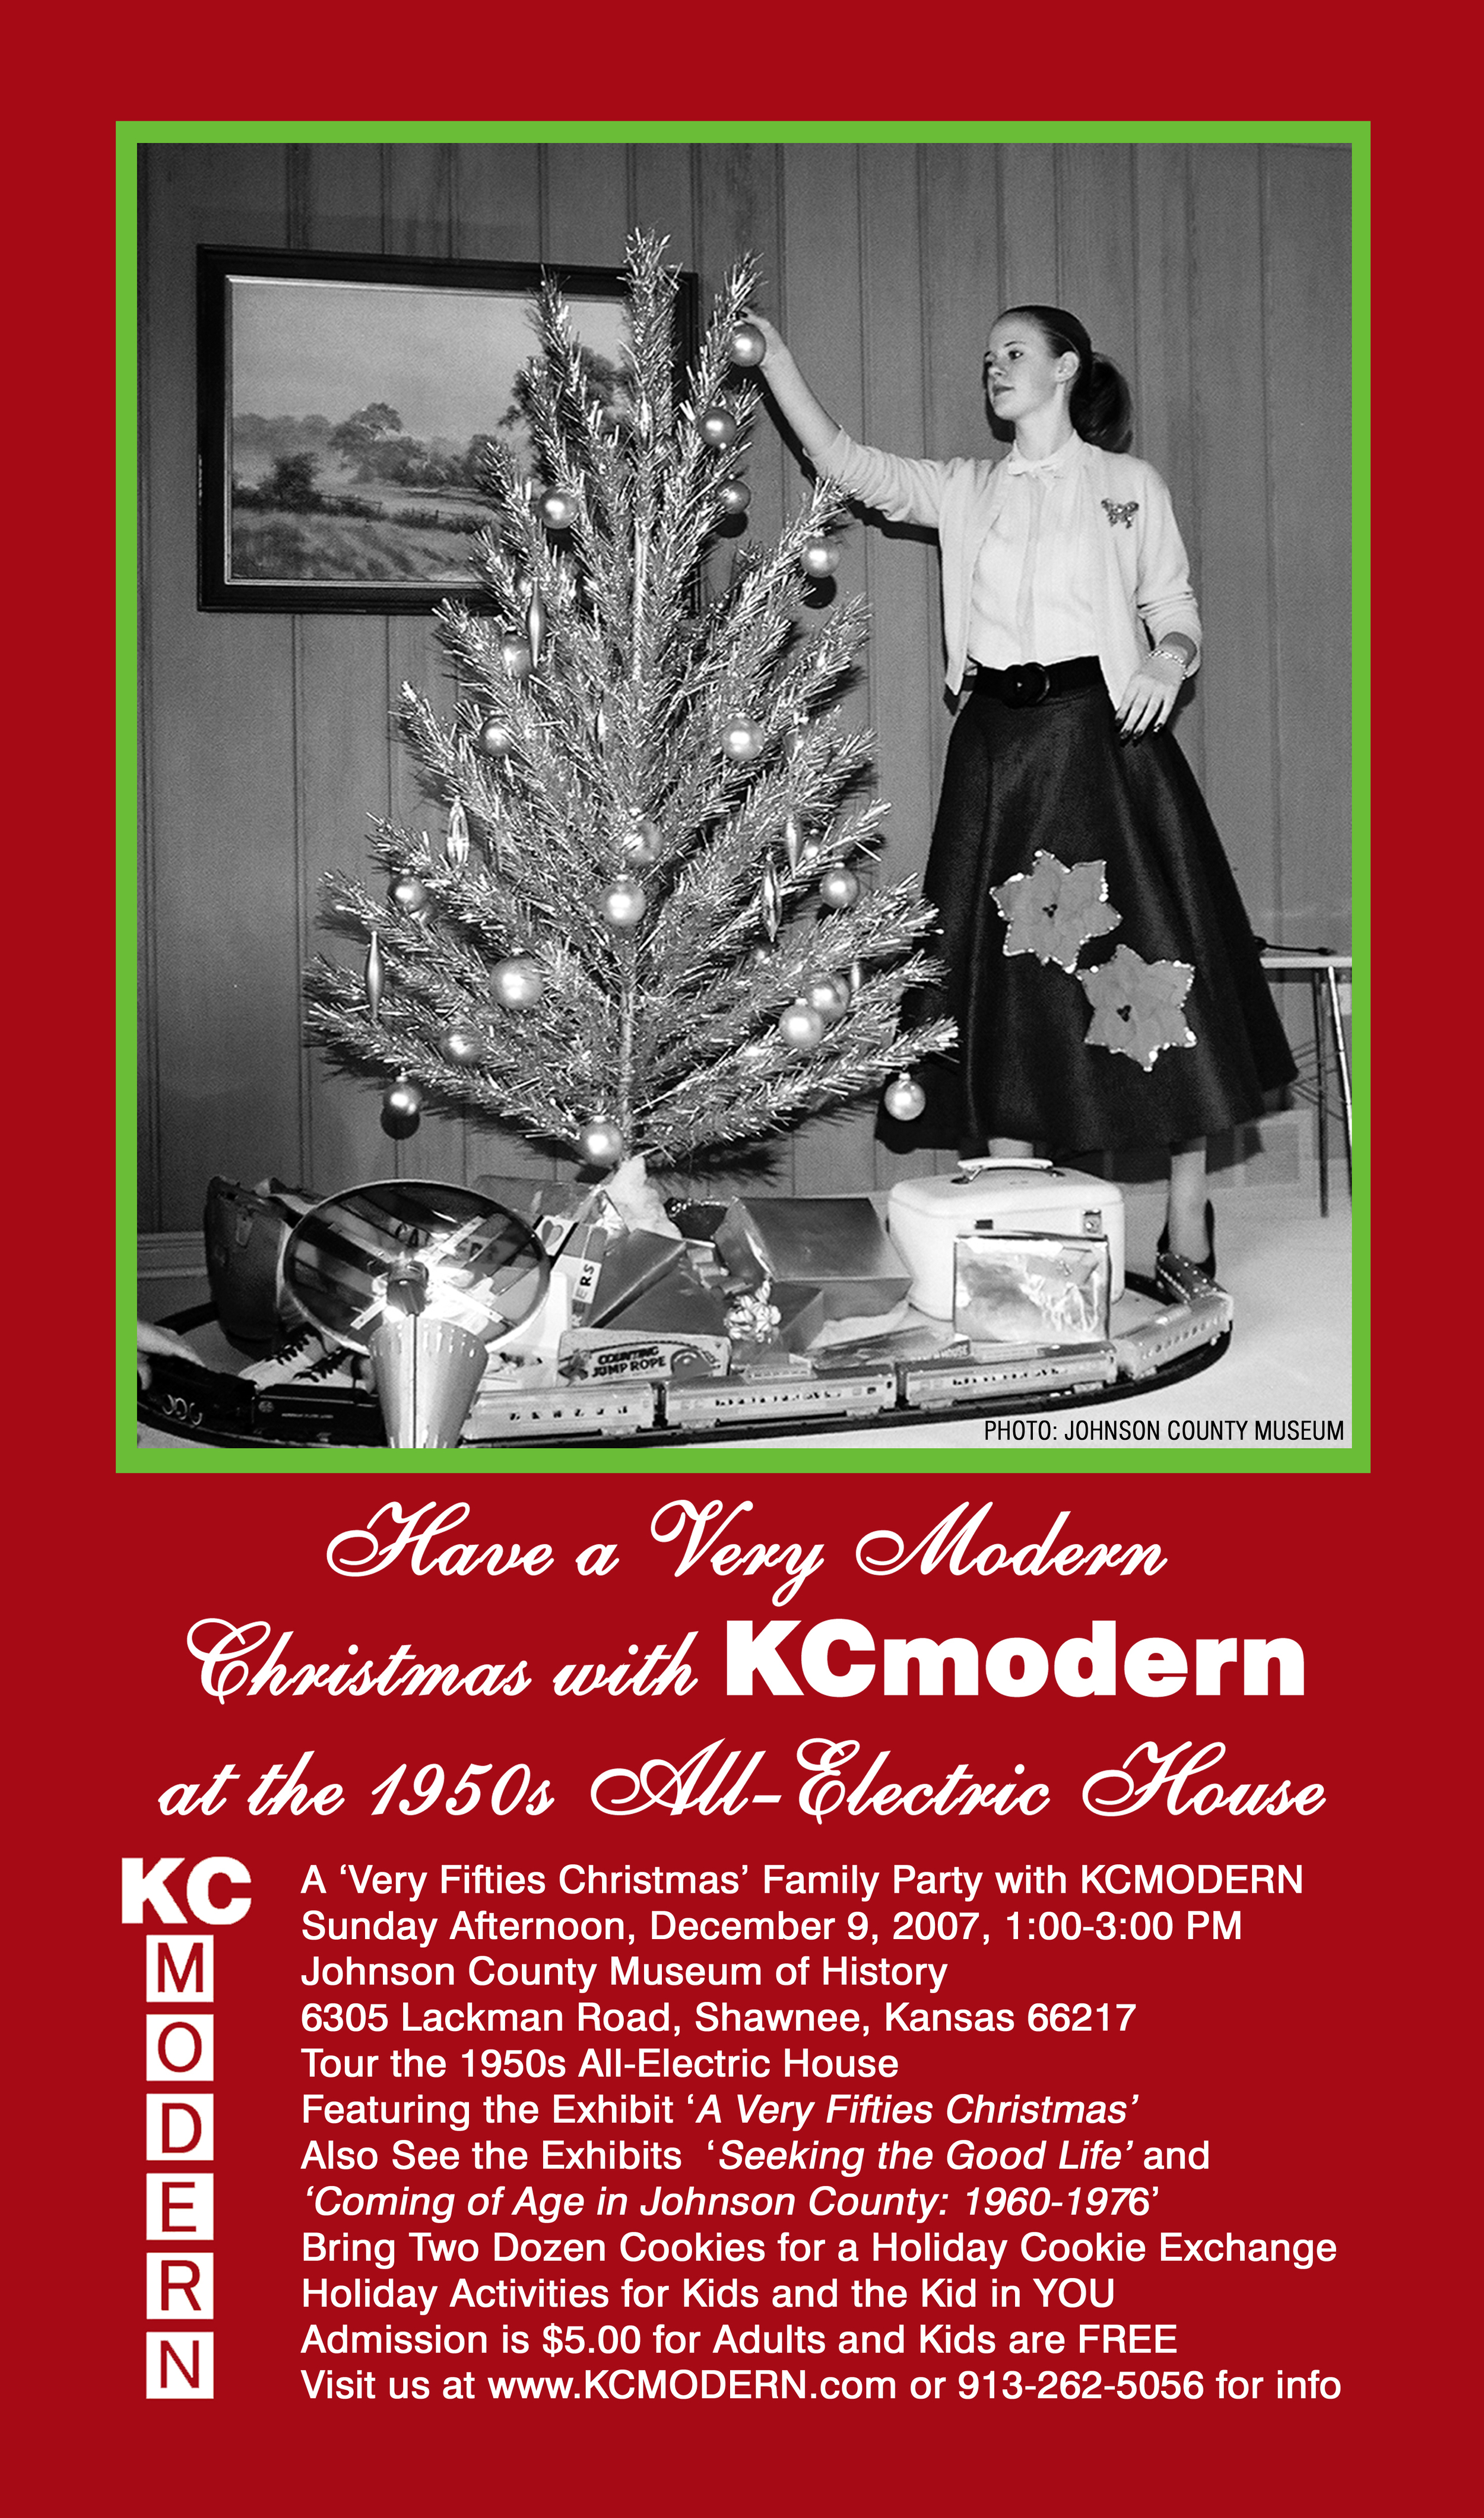 KCmodern Christmas 1950's All-Electric House Invite